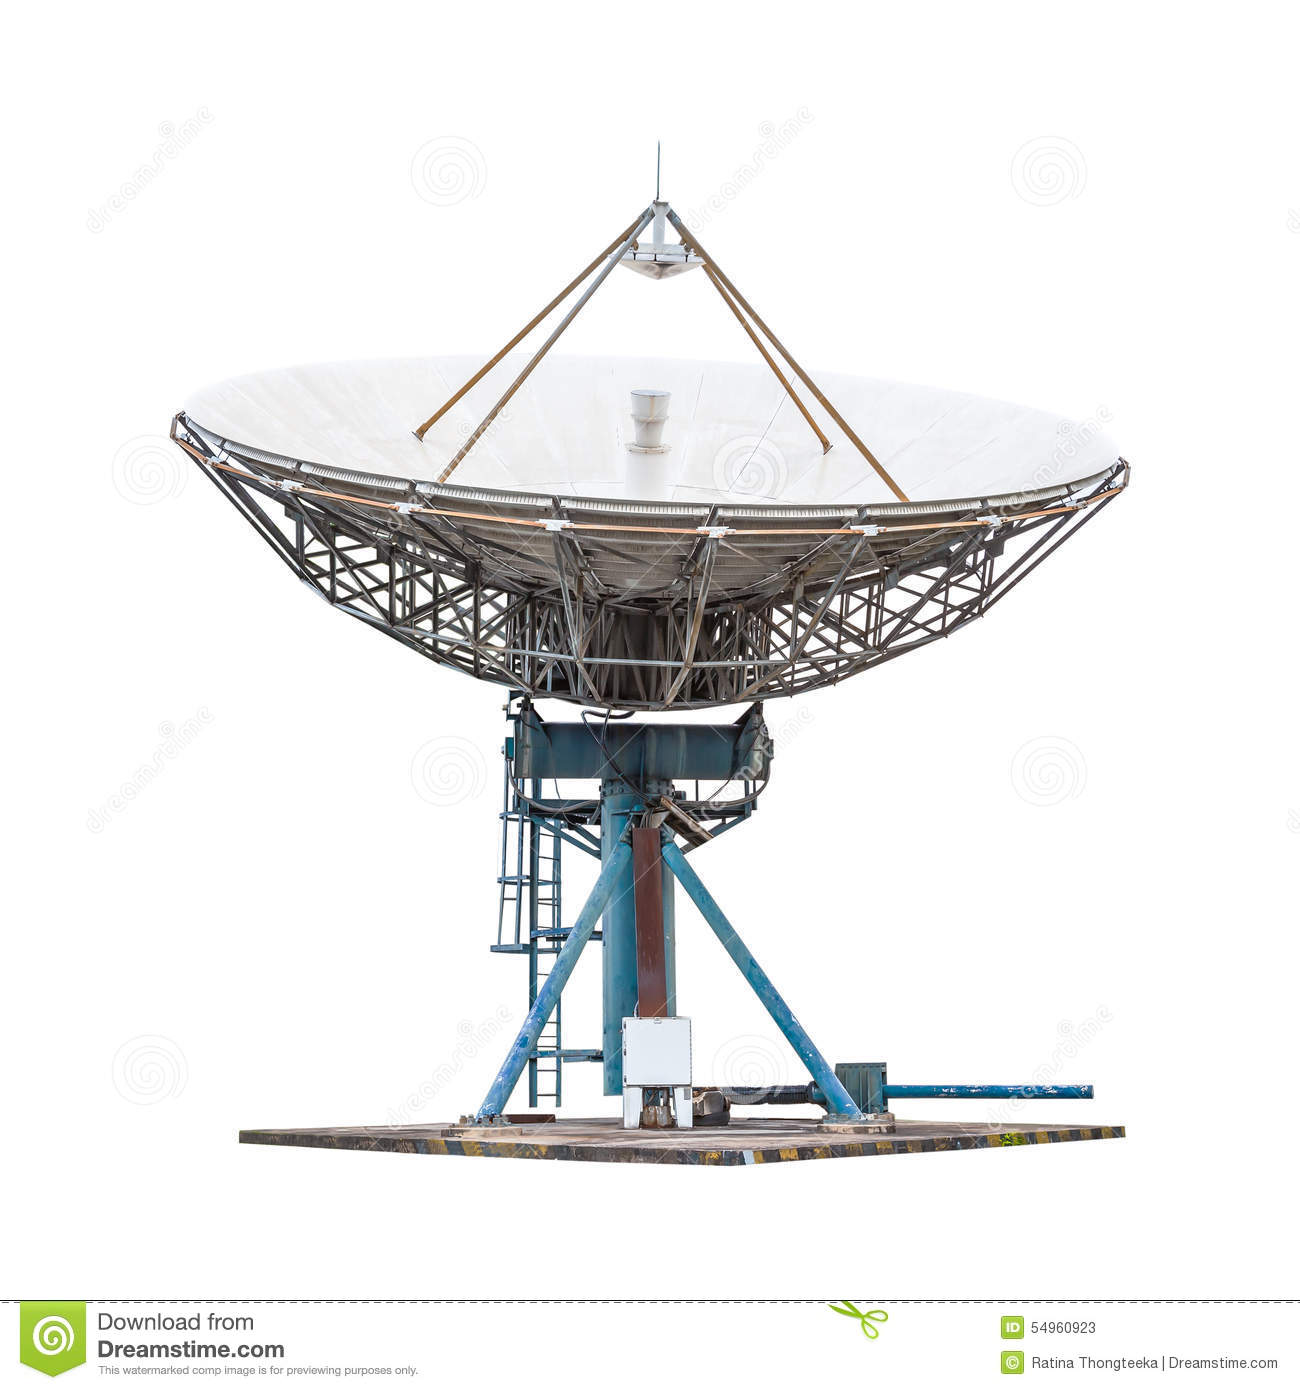 satellite dish antenna for television on house roof stock. Black Bedroom Furniture Sets. Home Design Ideas